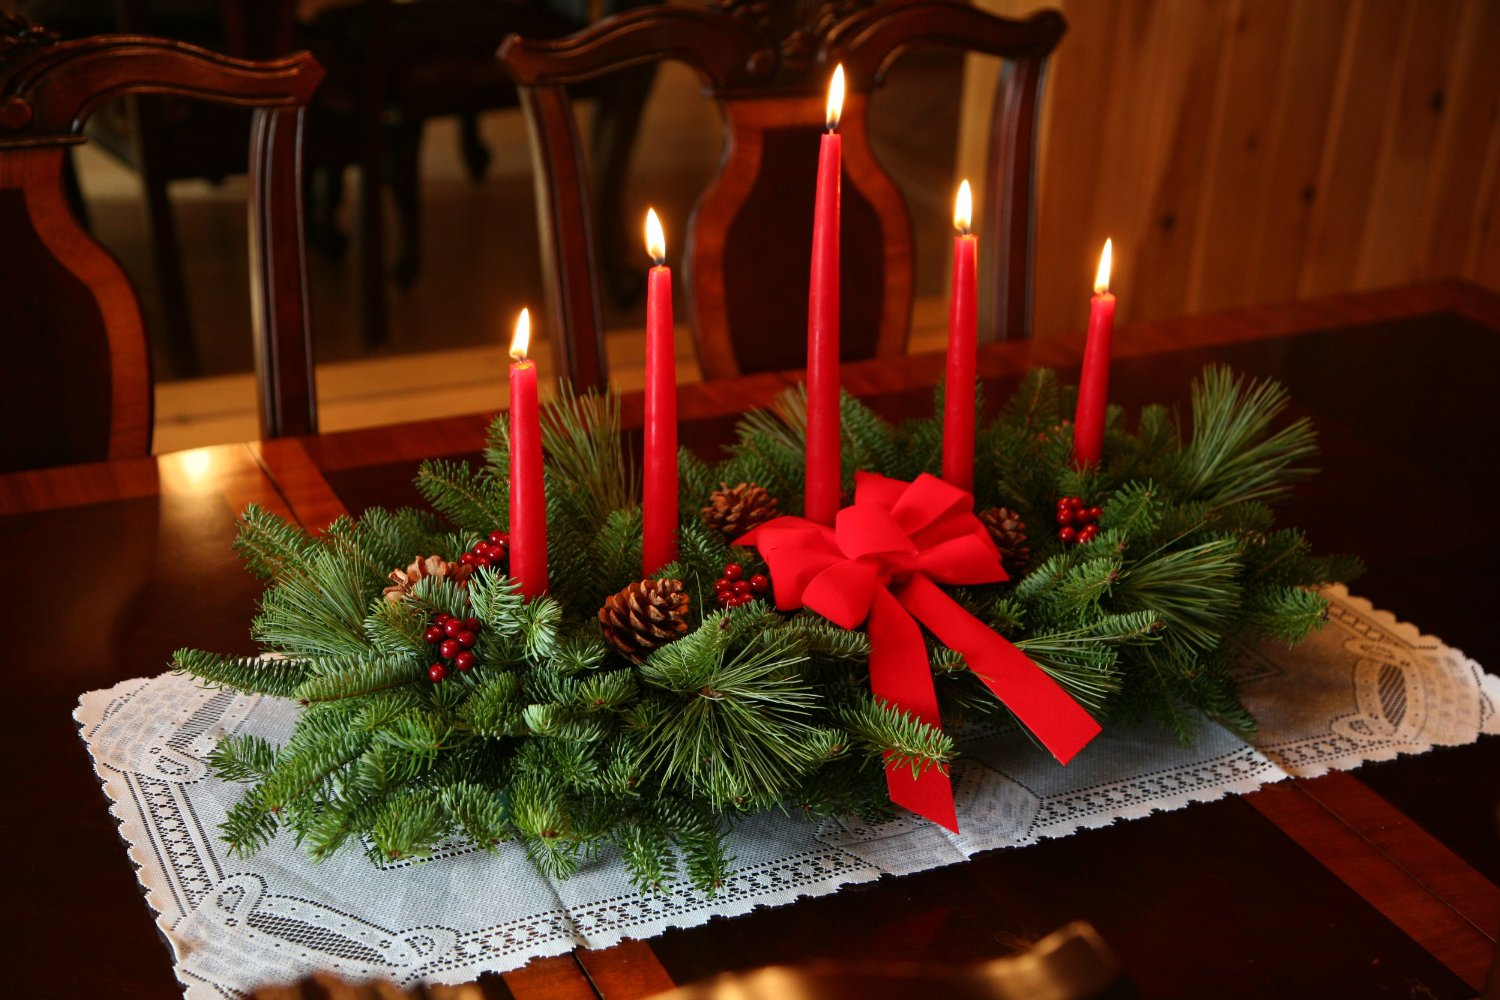 Candle Decoration on table for Christmas